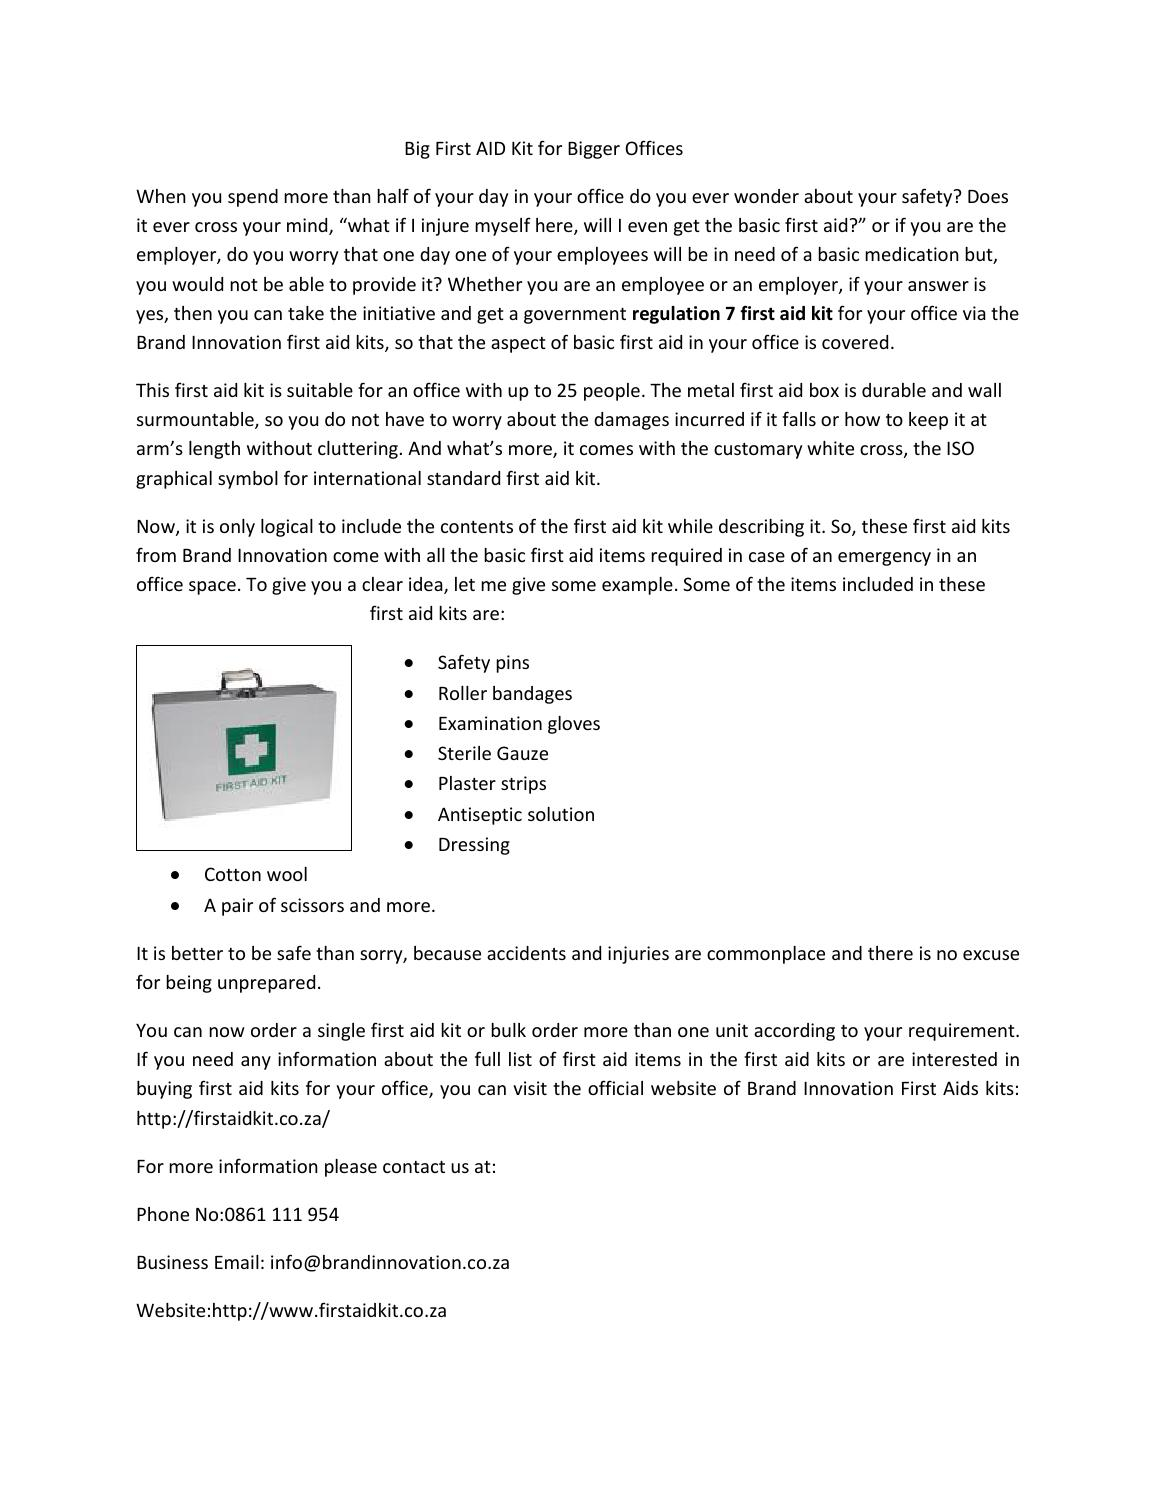 Regulation 7 First Aid Kit By First Aid Kit South Africa Issuu